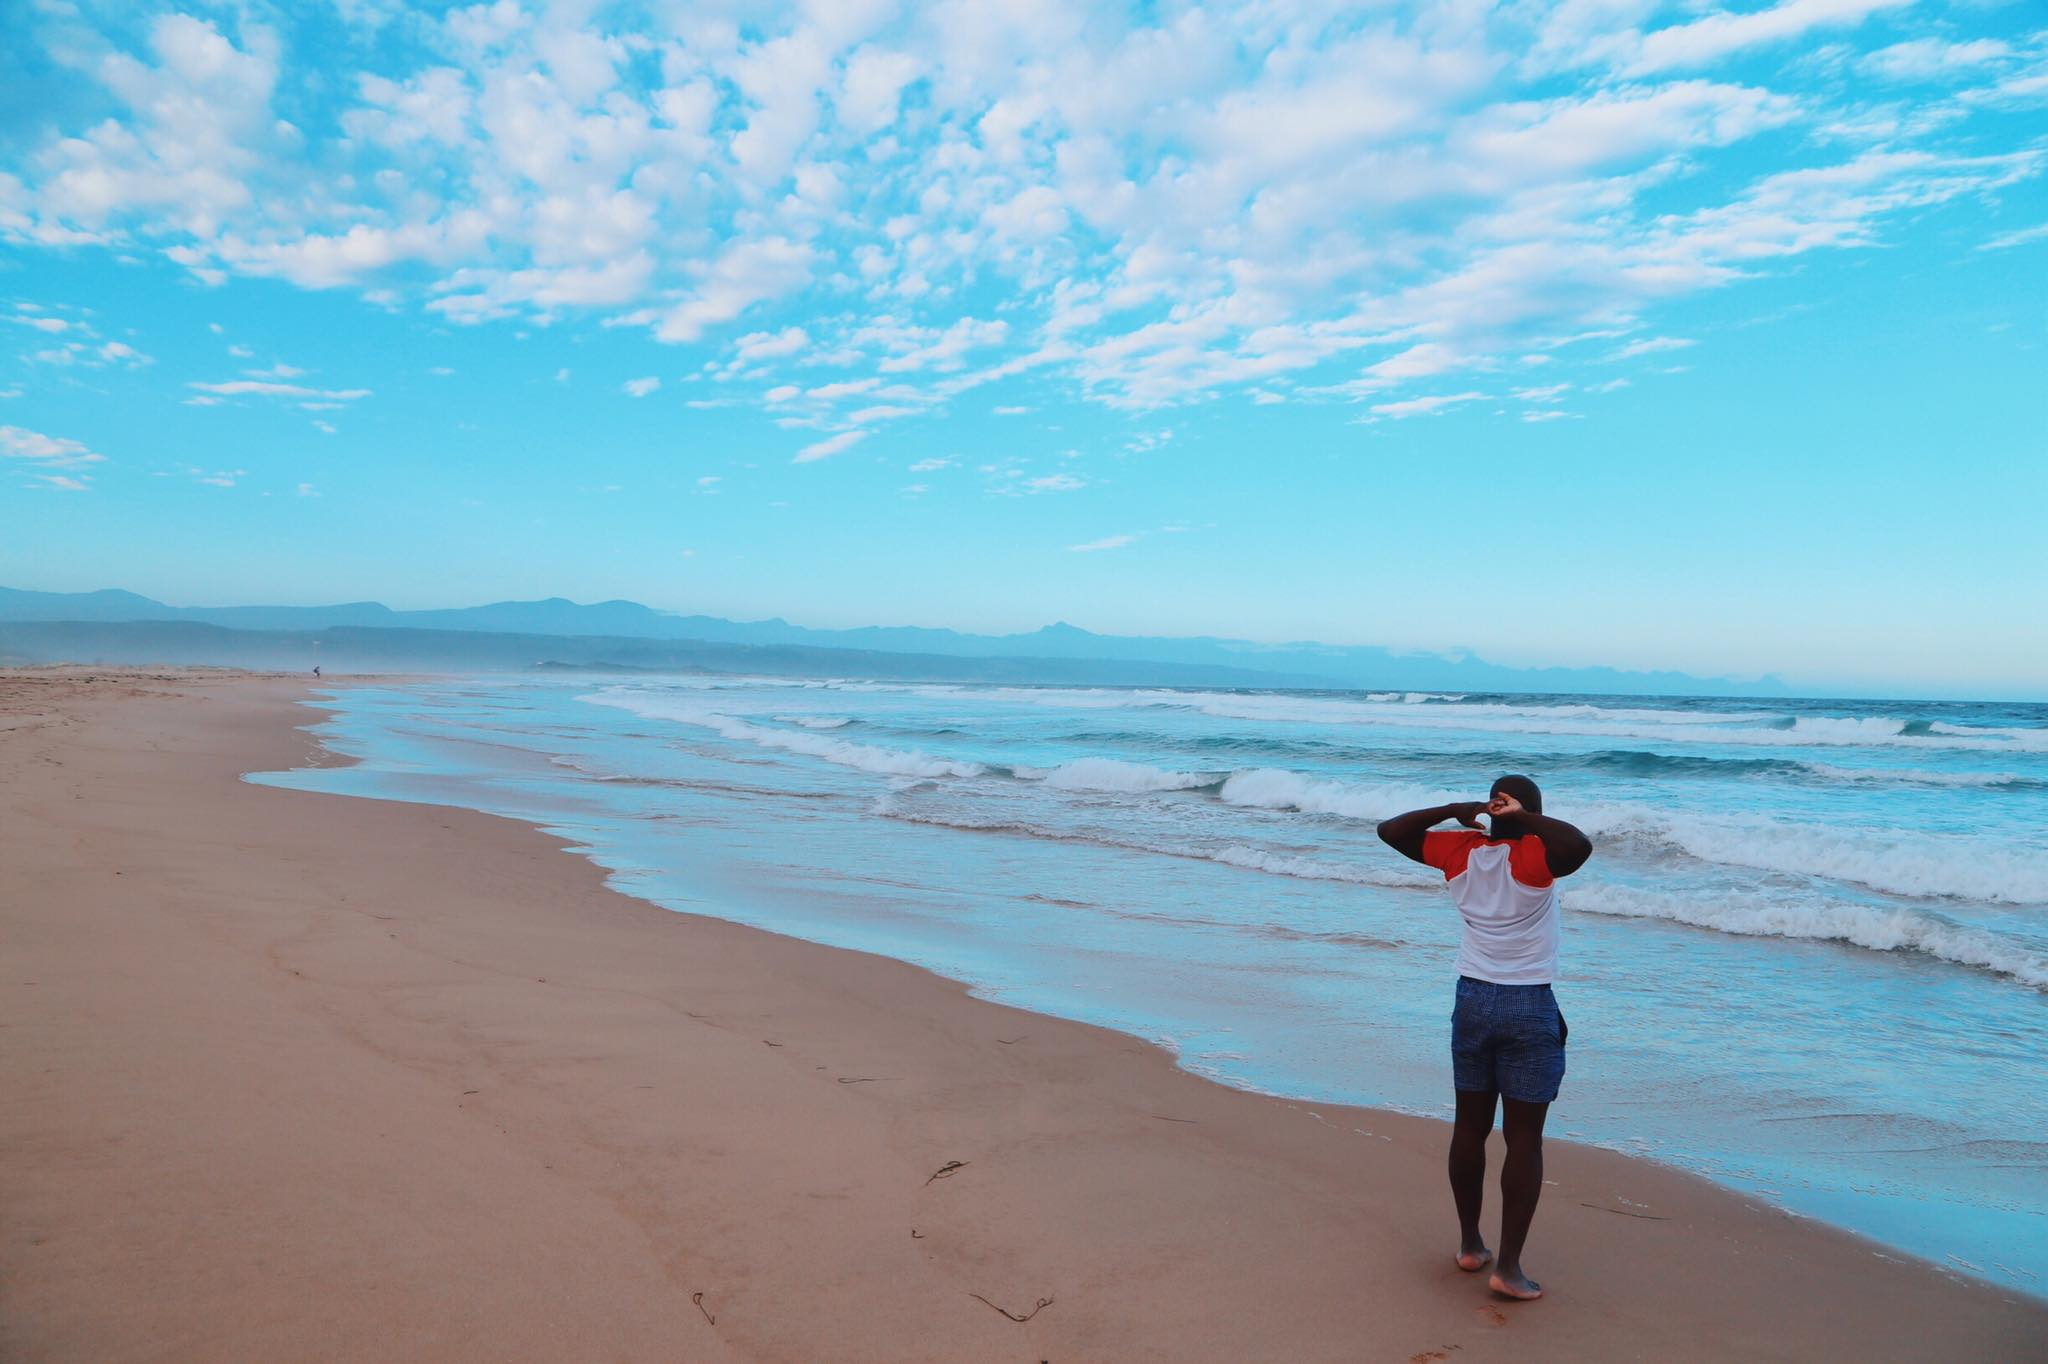 We're In South Africa! Tags - Africa, Plettenberg Bay, Port Elizabeth, South Africa, Tsitsikamma National Park (10)